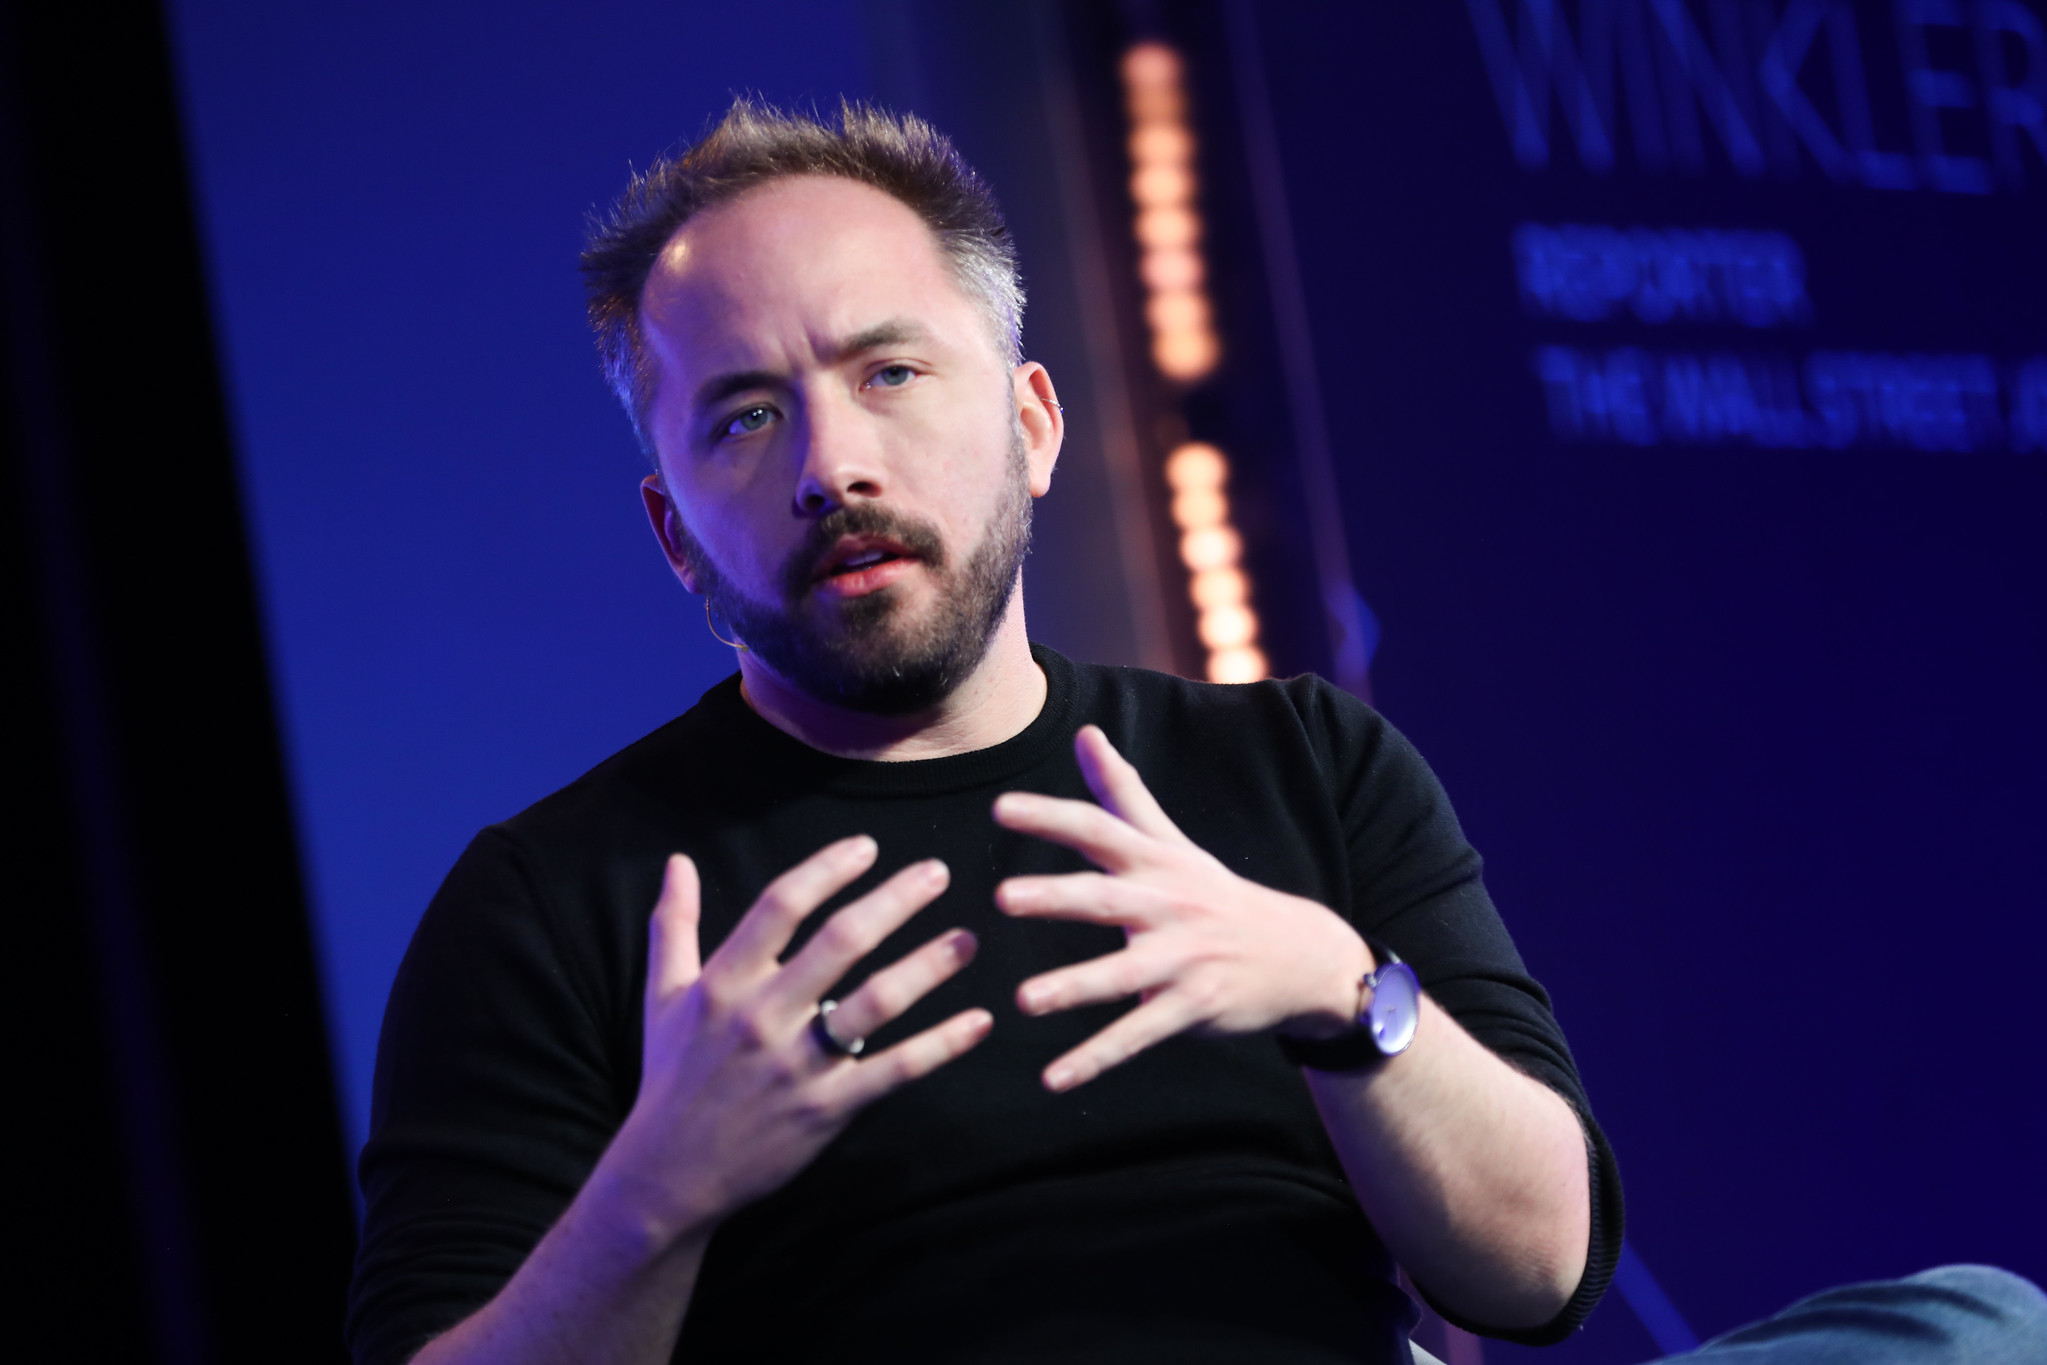 Dropbox beats market estimates thanks to solid customer growth